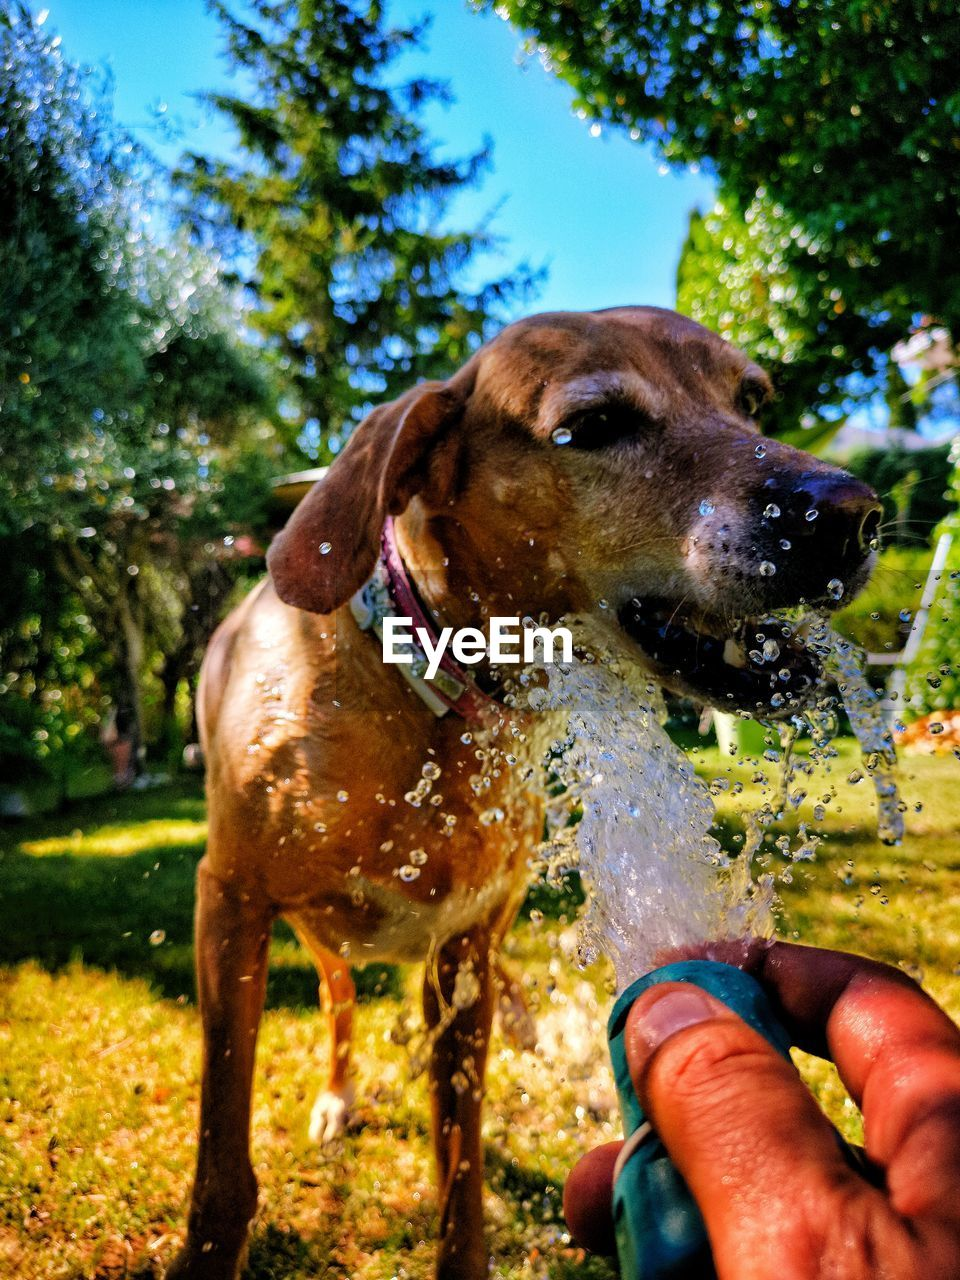 domestic, domestic animals, animal themes, pets, mammal, animal, one animal, dog, canine, vertebrate, human hand, one person, nature, human body part, hand, plant, real people, day, tree, unrecognizable person, finger, outdoors